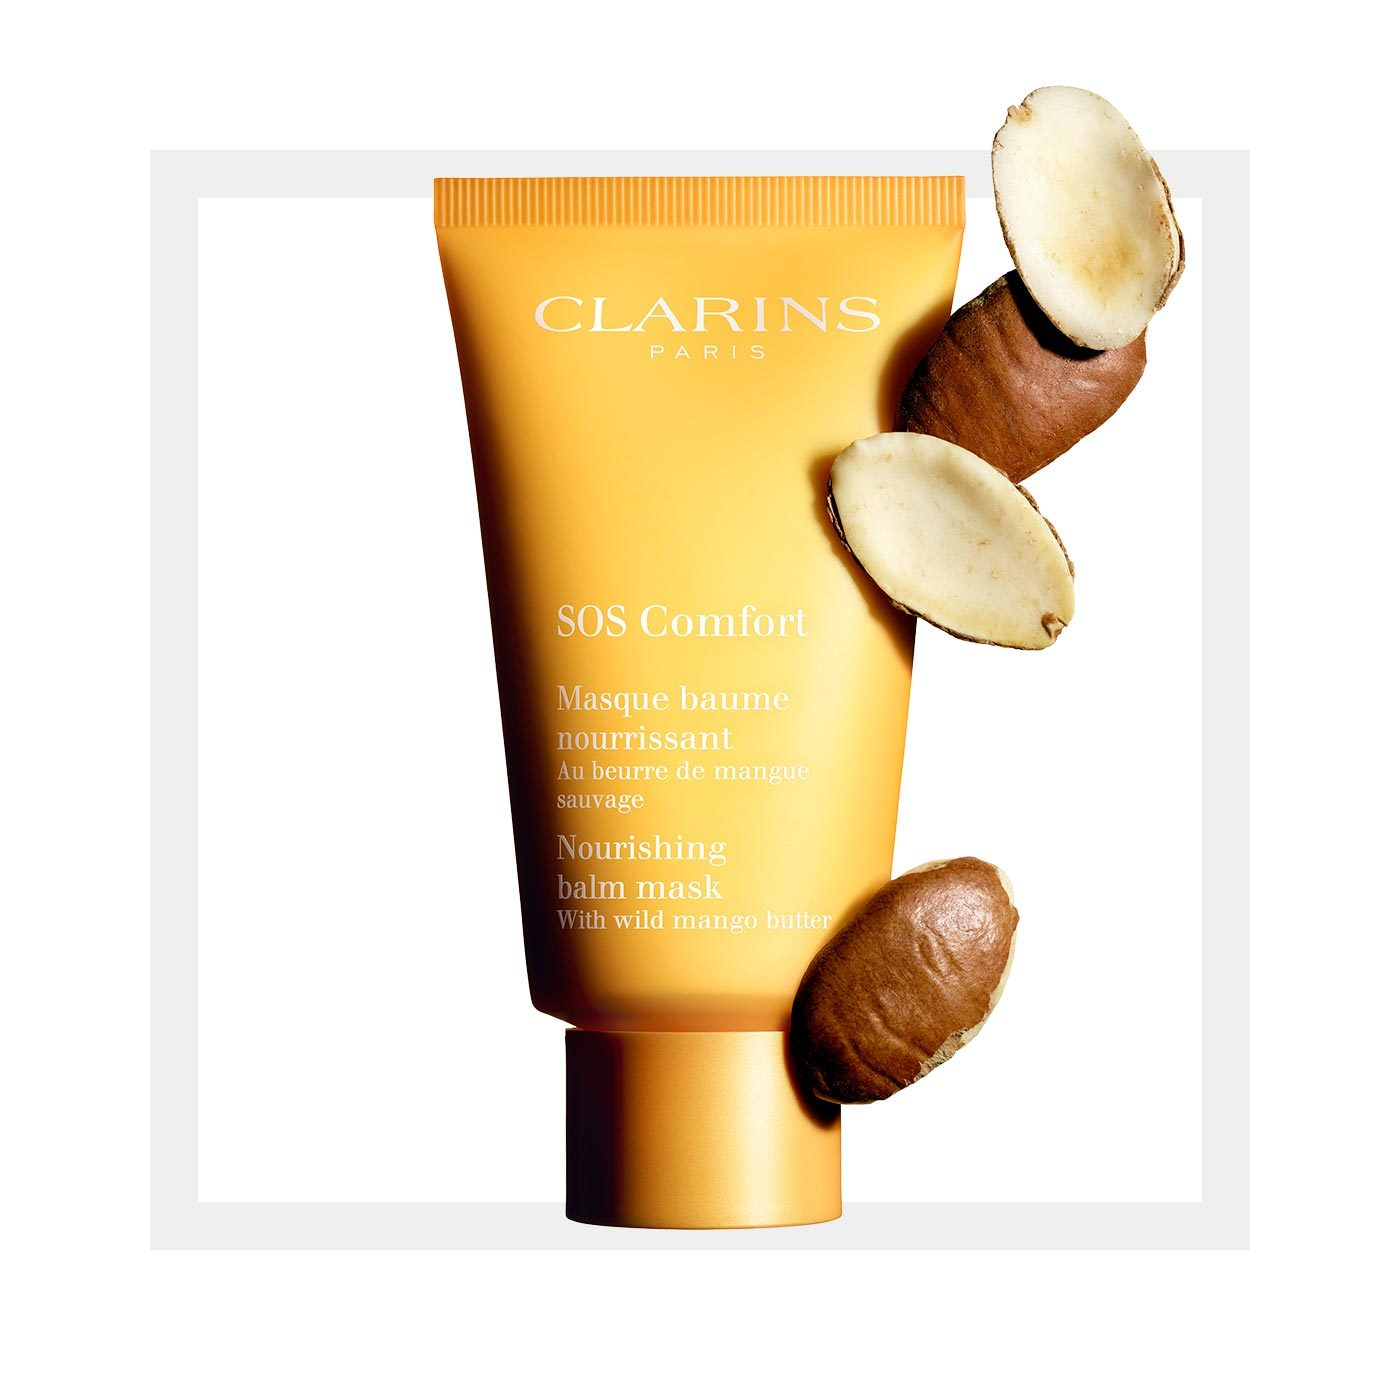 SOS Comfort by Clarins Paris